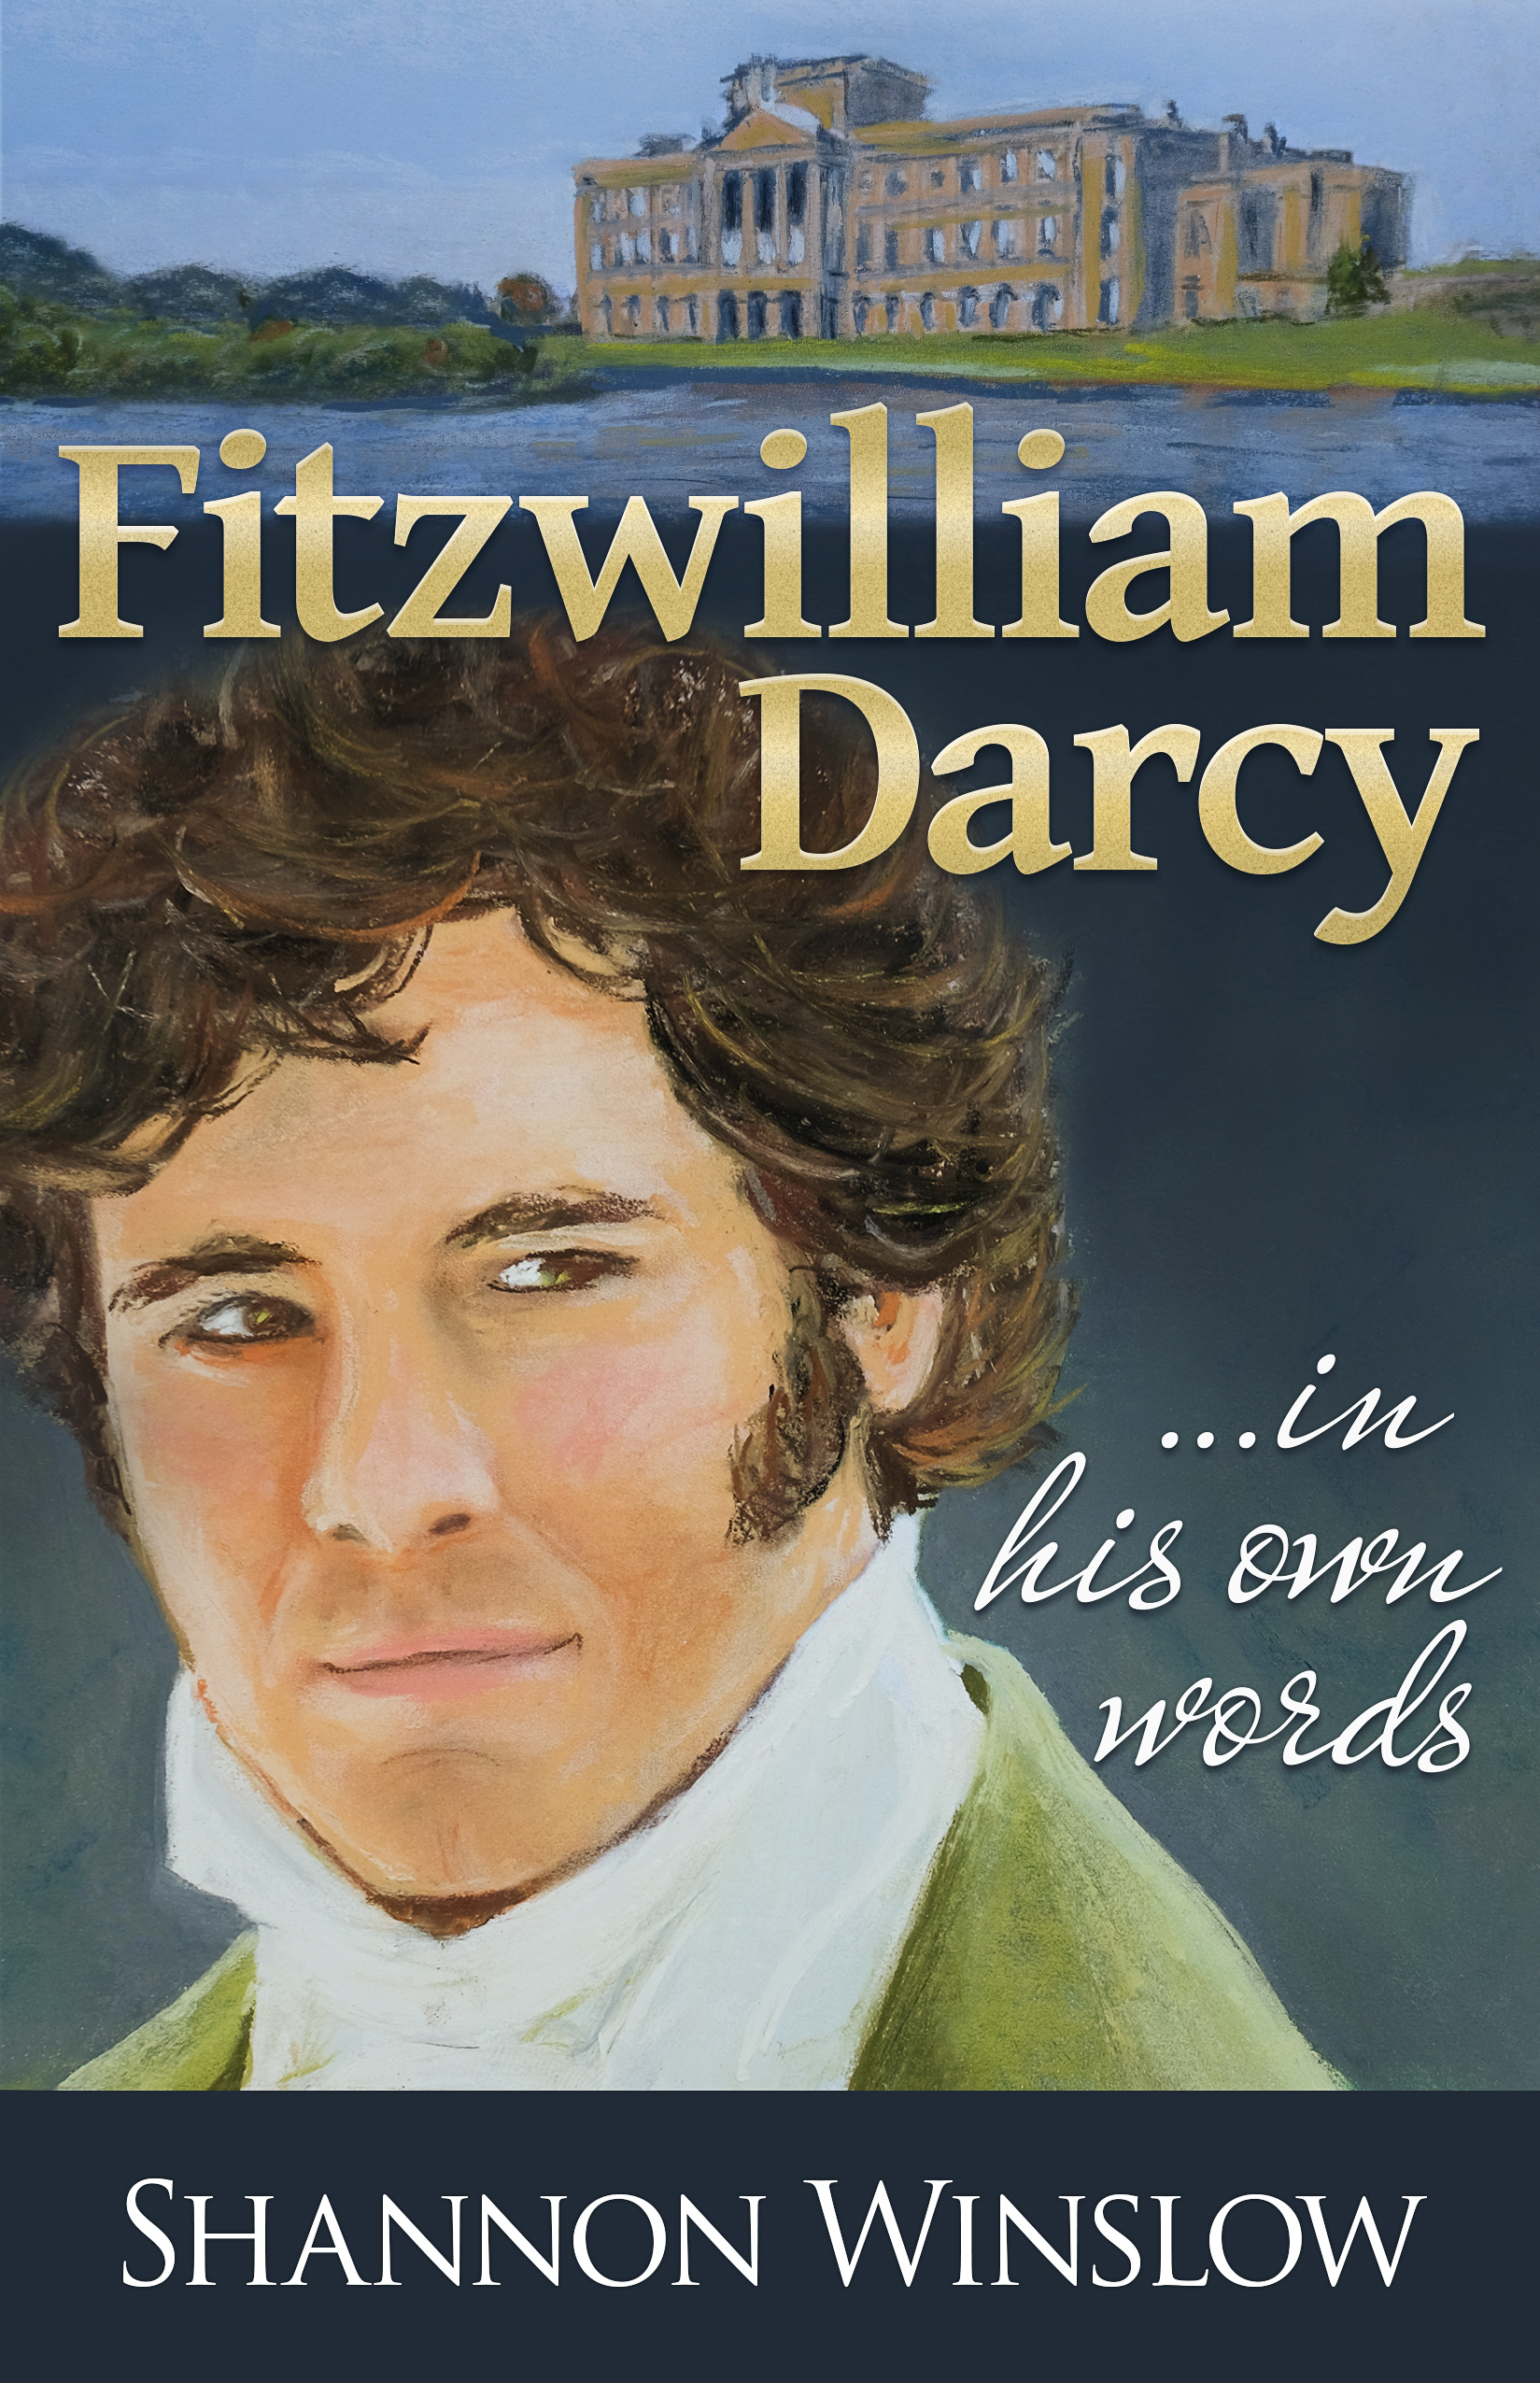 Fitzwilliam Darcy - KINDLE